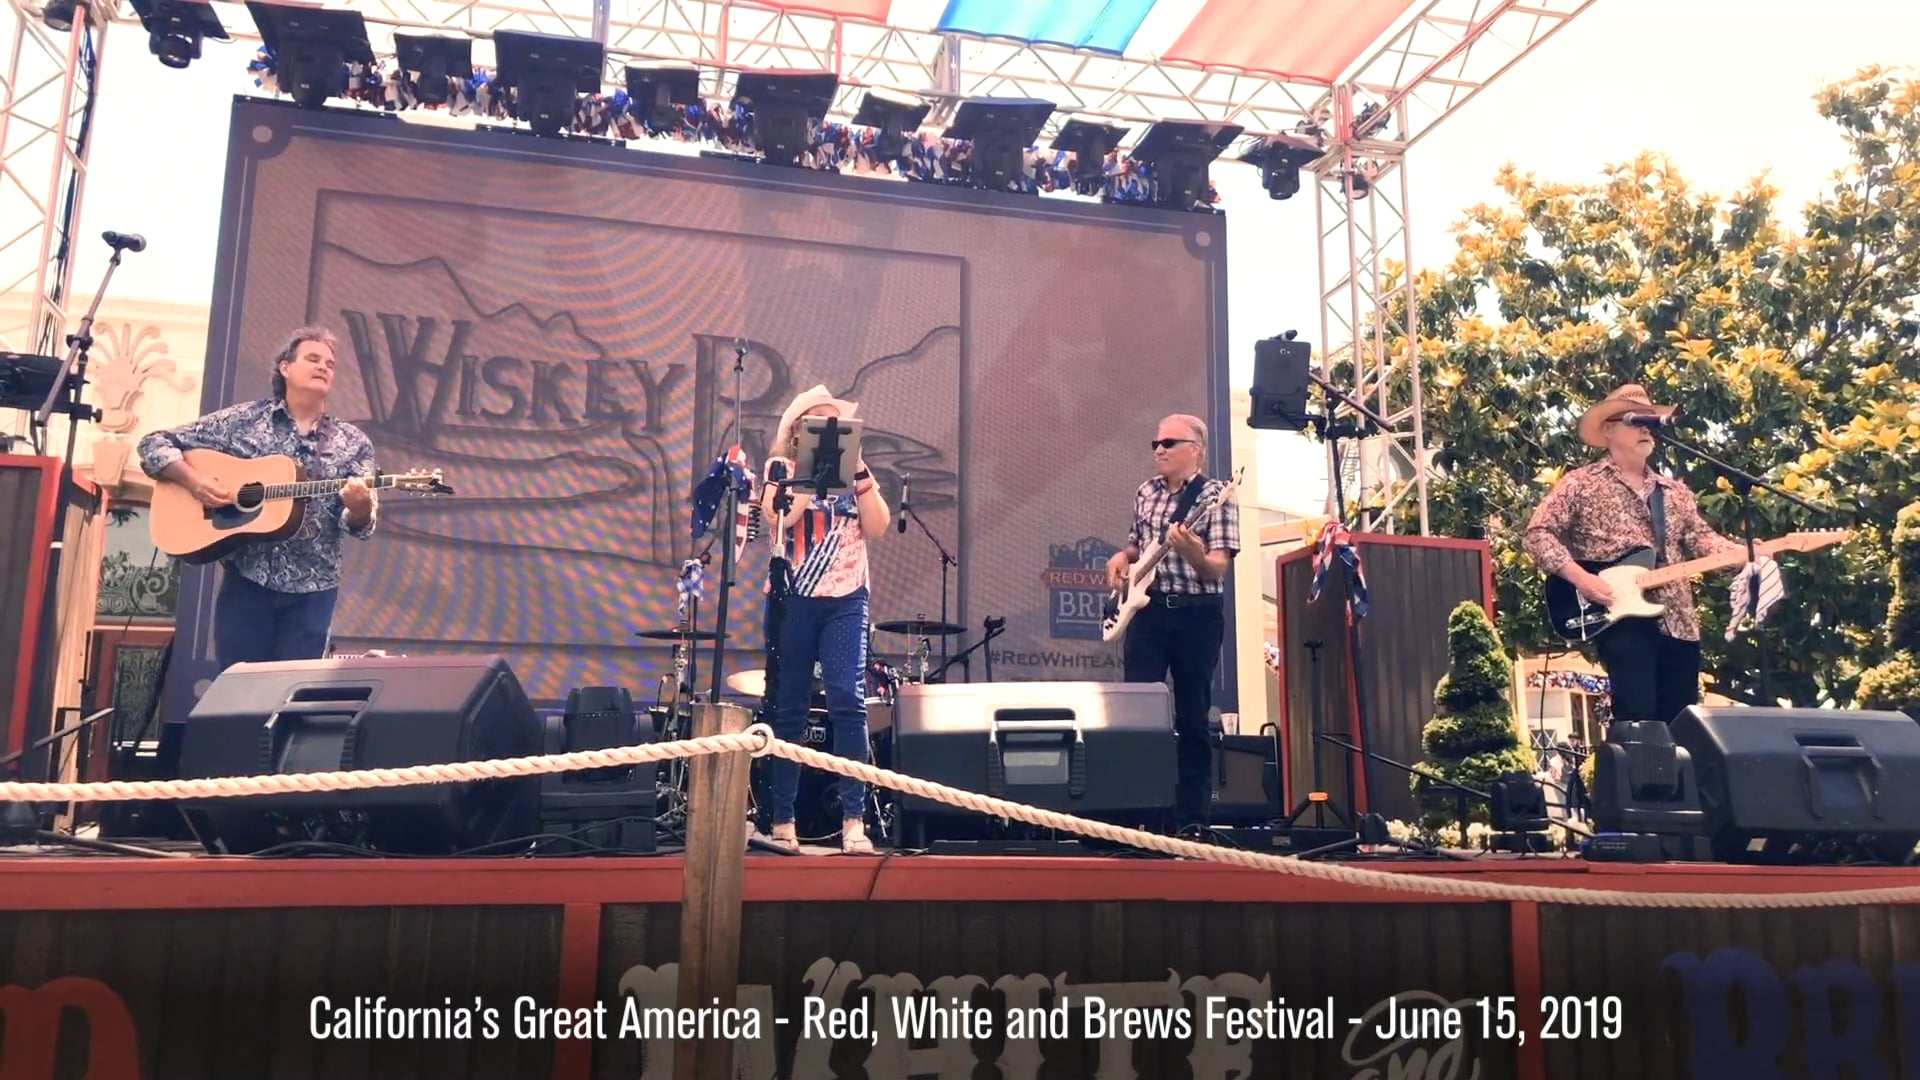 Whiskey Pass on Stage